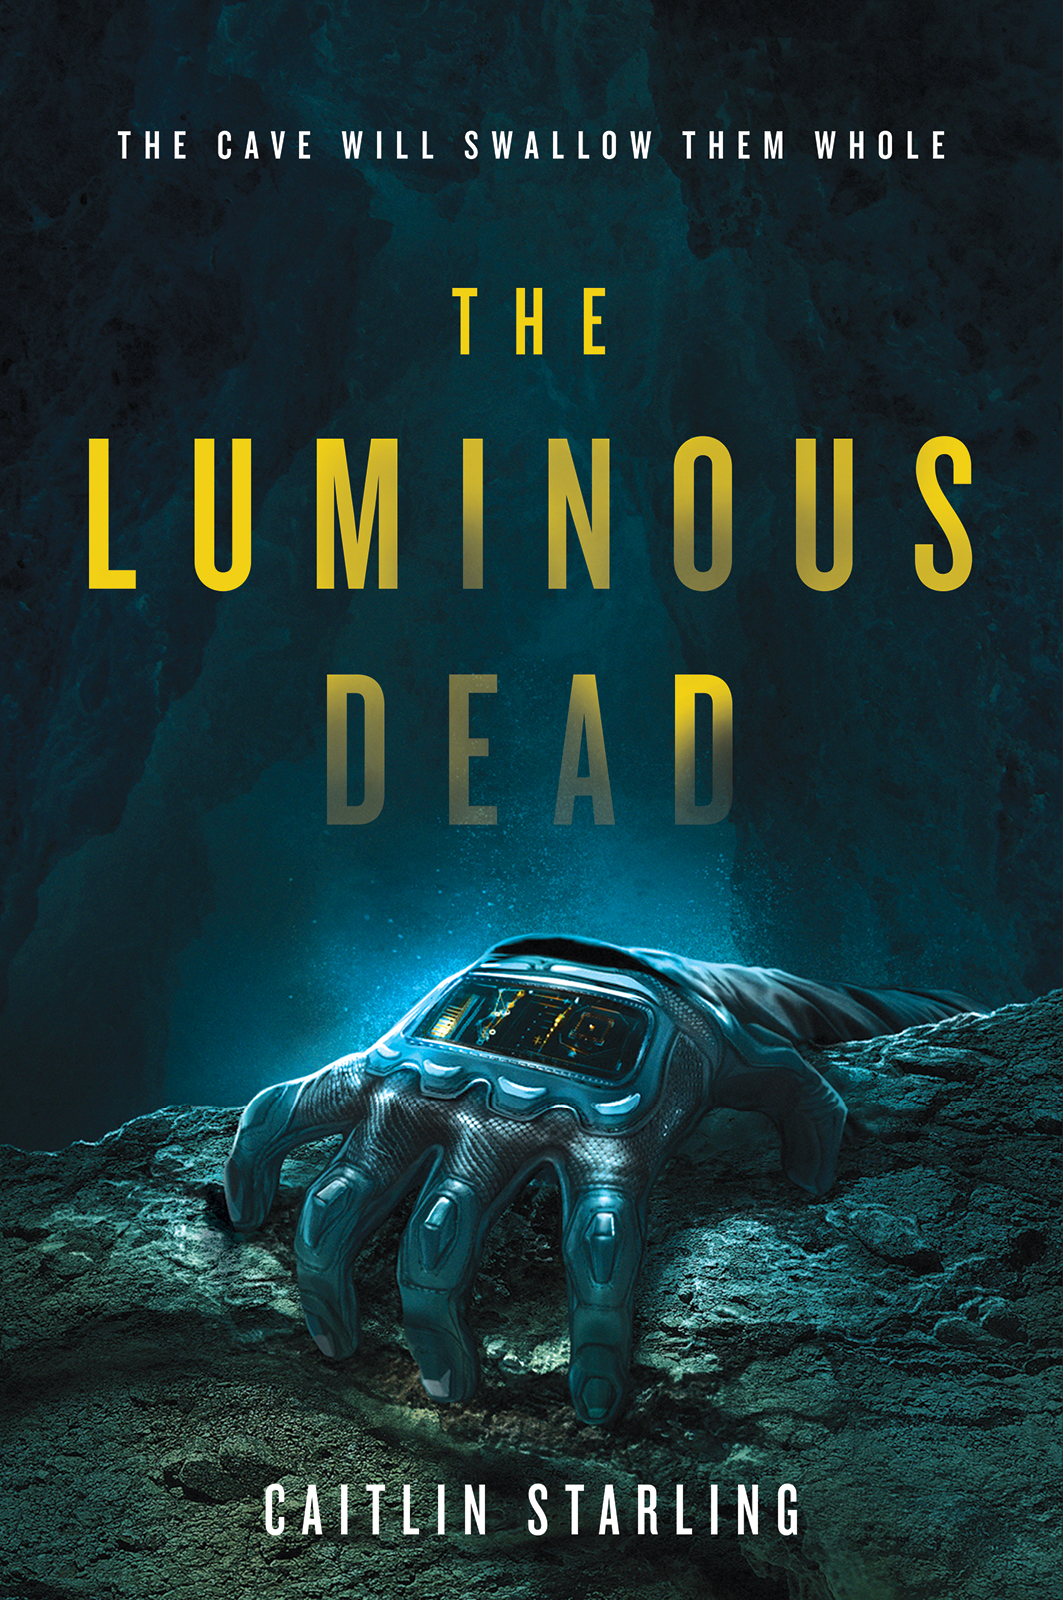 LuminousDeadCover